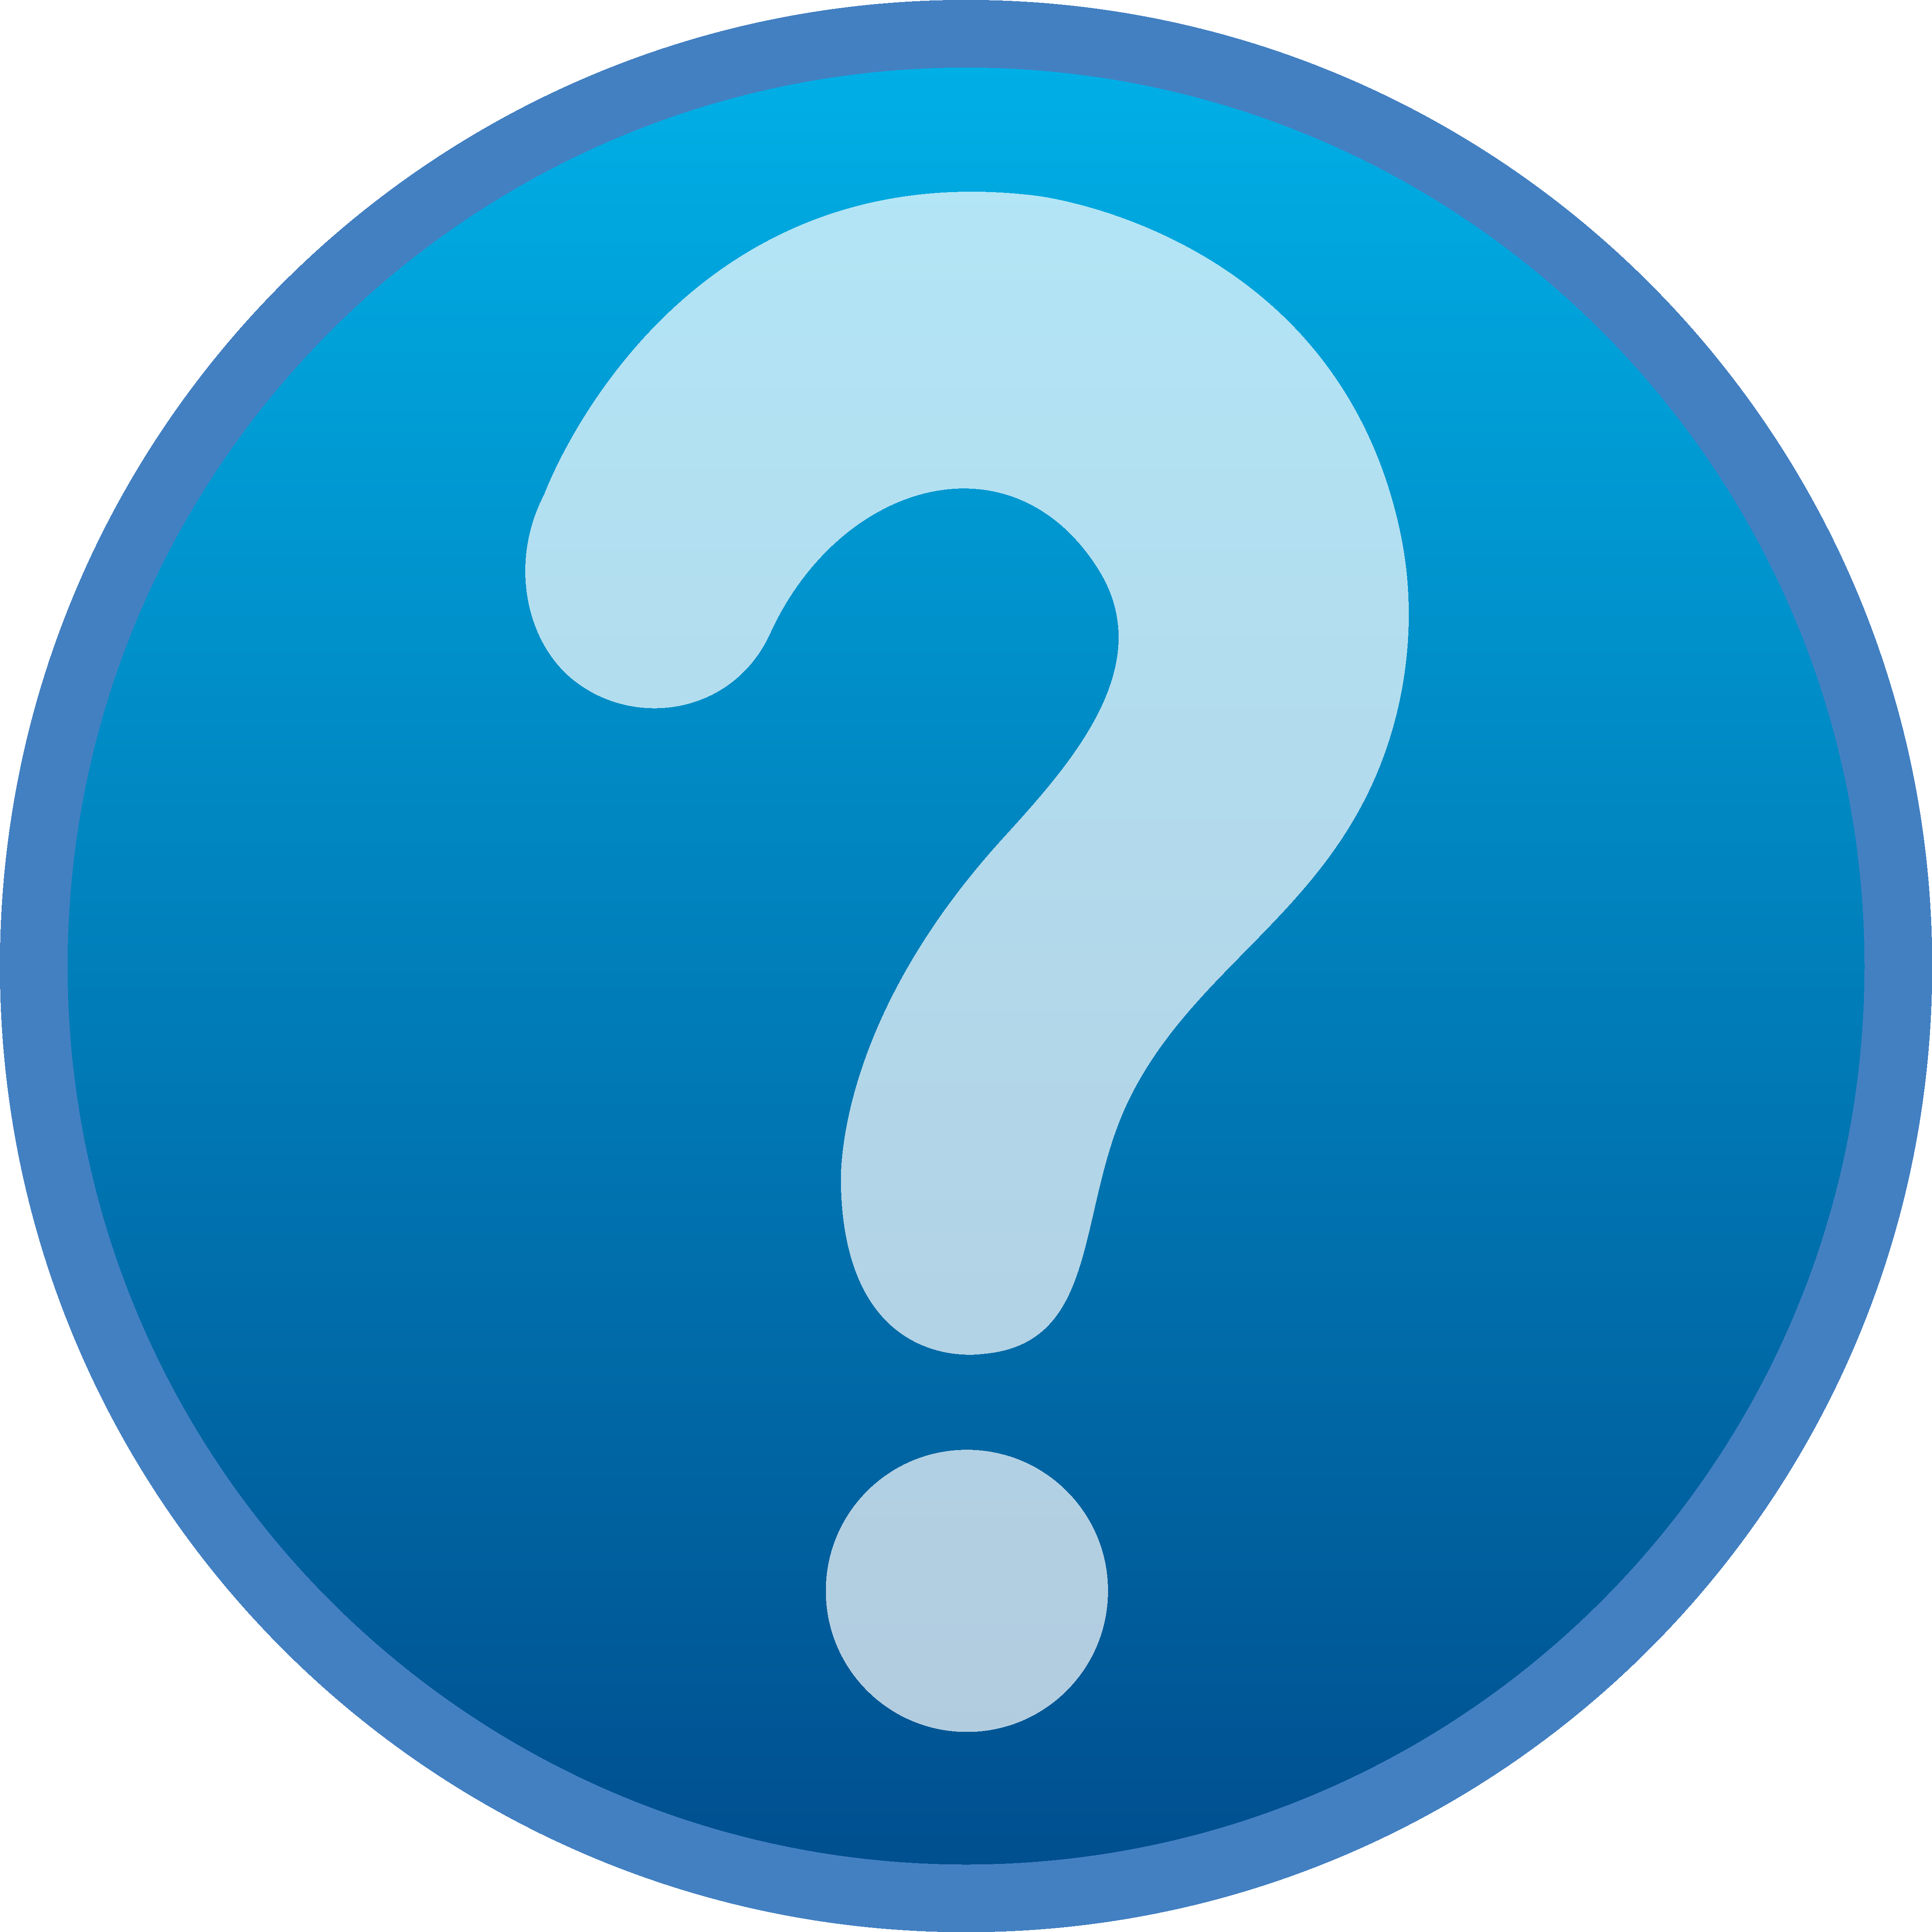 4767x4767 Image Of Question Mark Clipart Panda